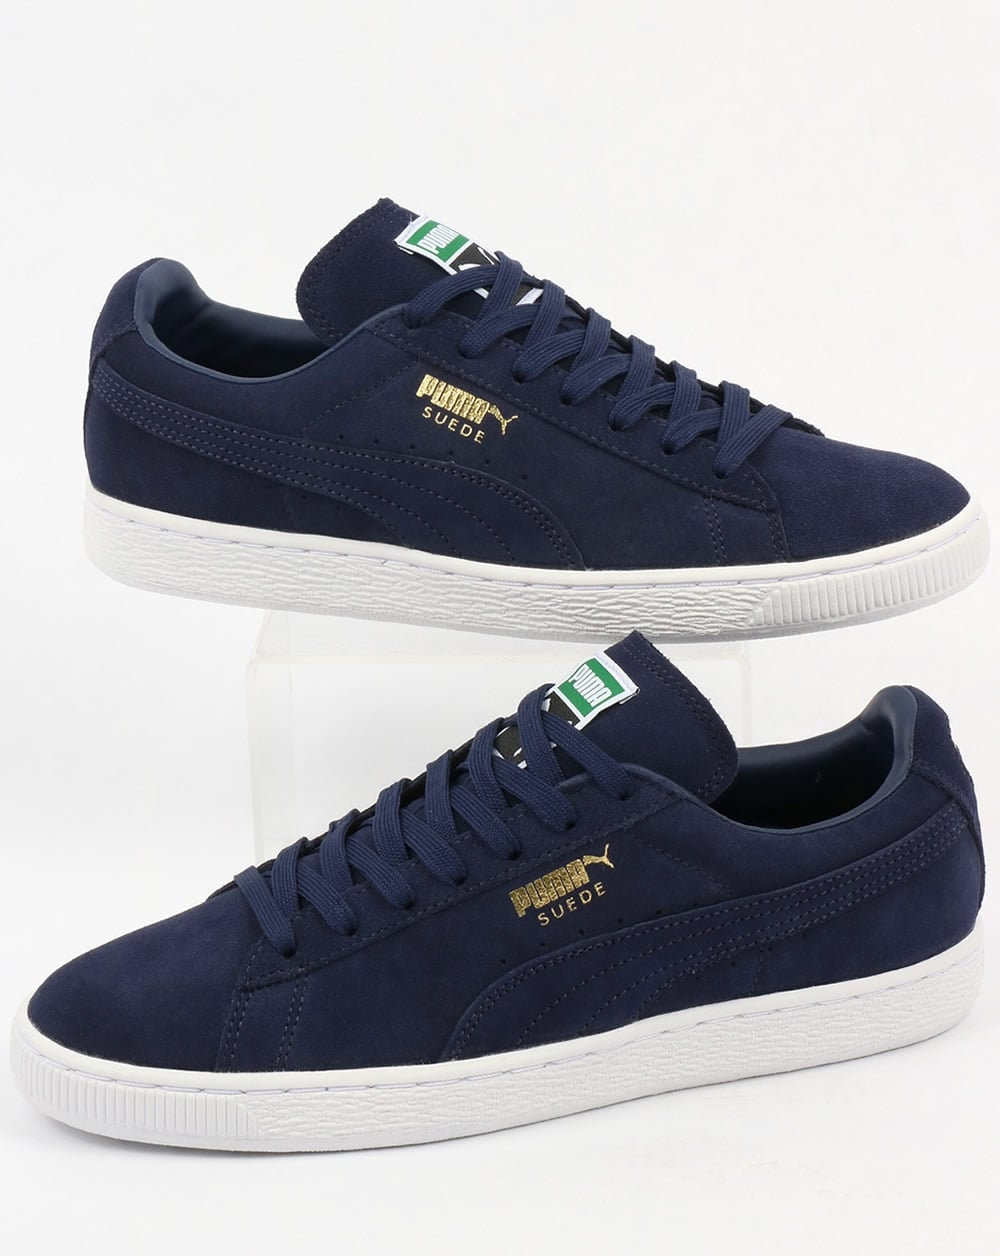 puma suede classic trainers navy navy blue shoes archive originals. Black Bedroom Furniture Sets. Home Design Ideas